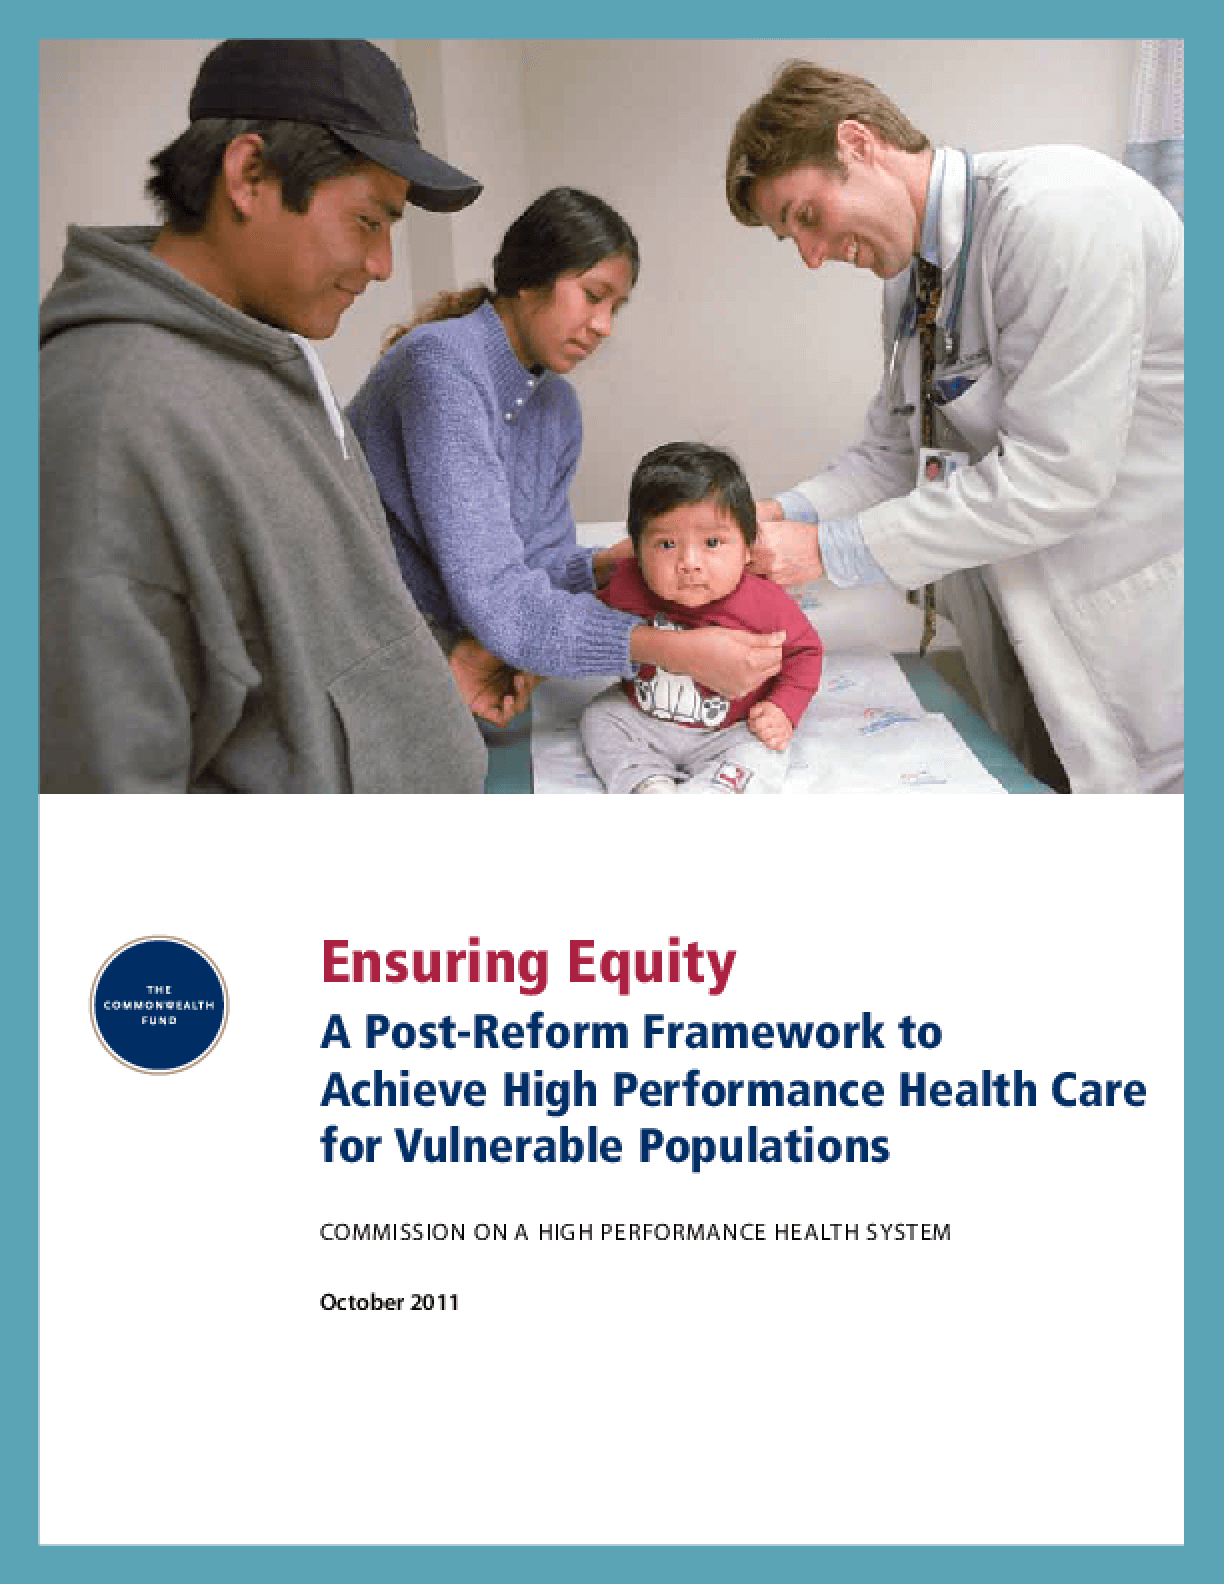 Ensuring Equity: A Post-Reform Framework to Achieve High Performance Health Care for Vulnerable Populations